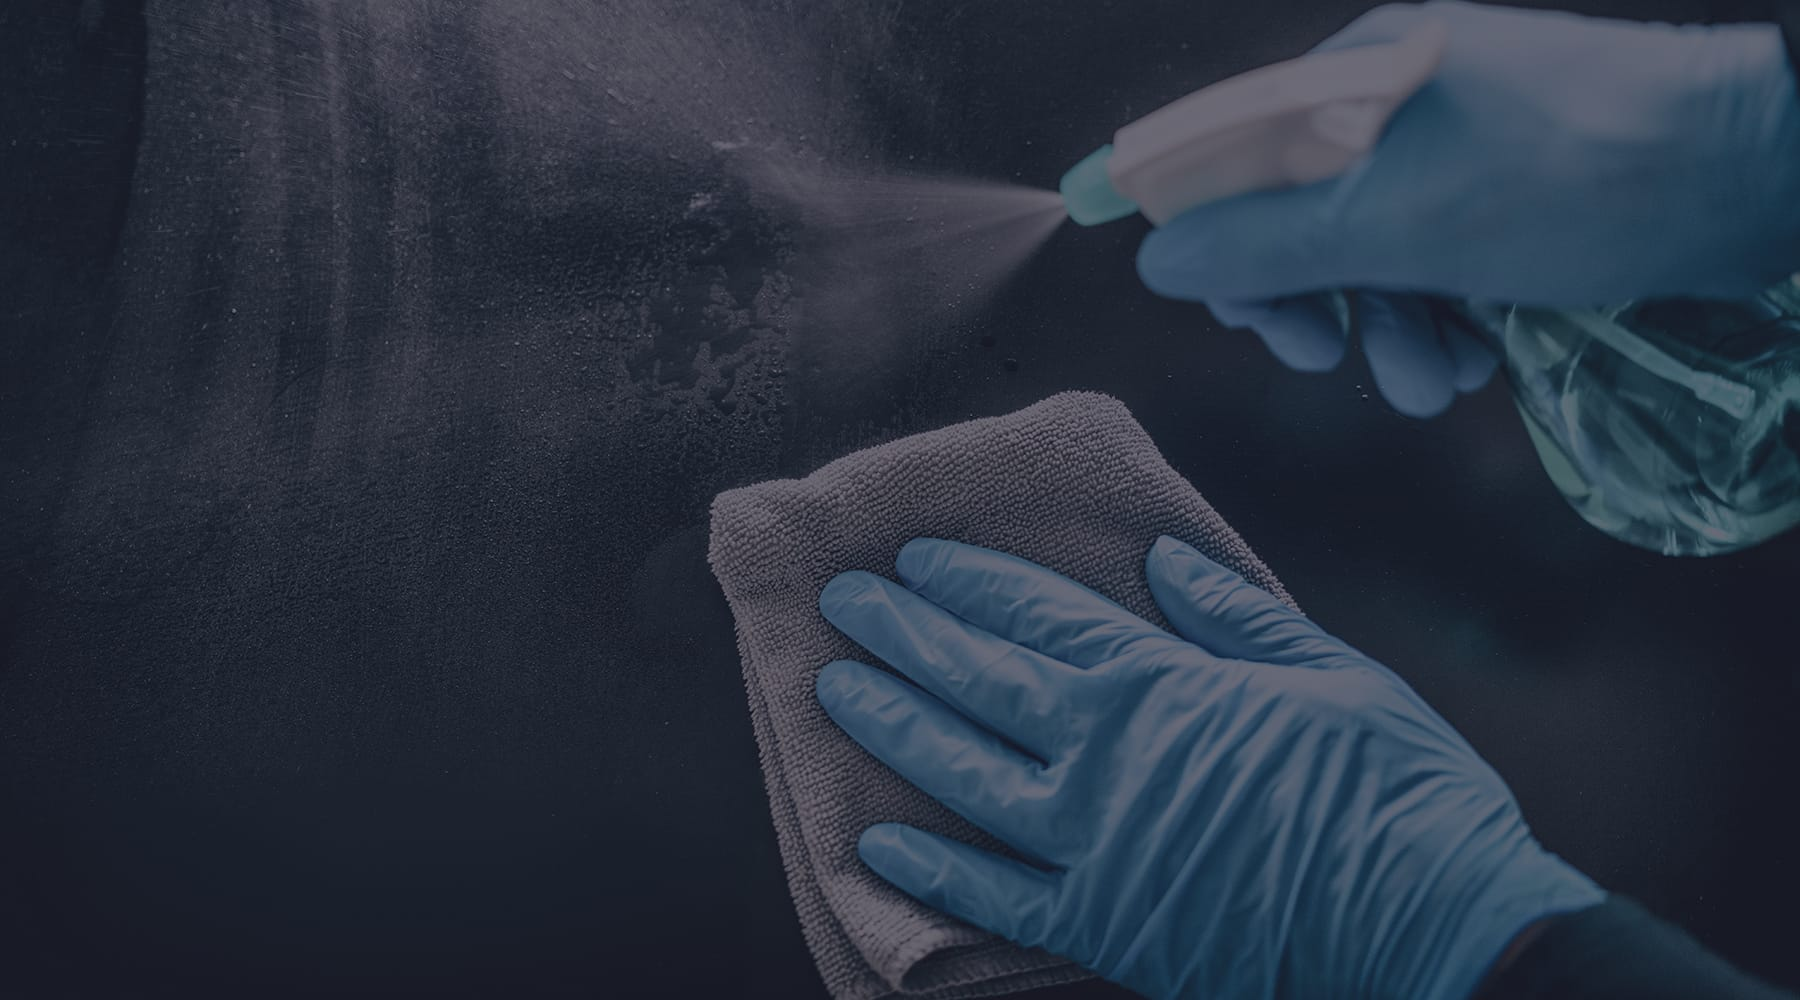 A person spraying a disinfectant cleaner wearing nitrile gloves and holding a cloth. Shop disinfectants and cleaners online at JC Licht in Chicago, IL.